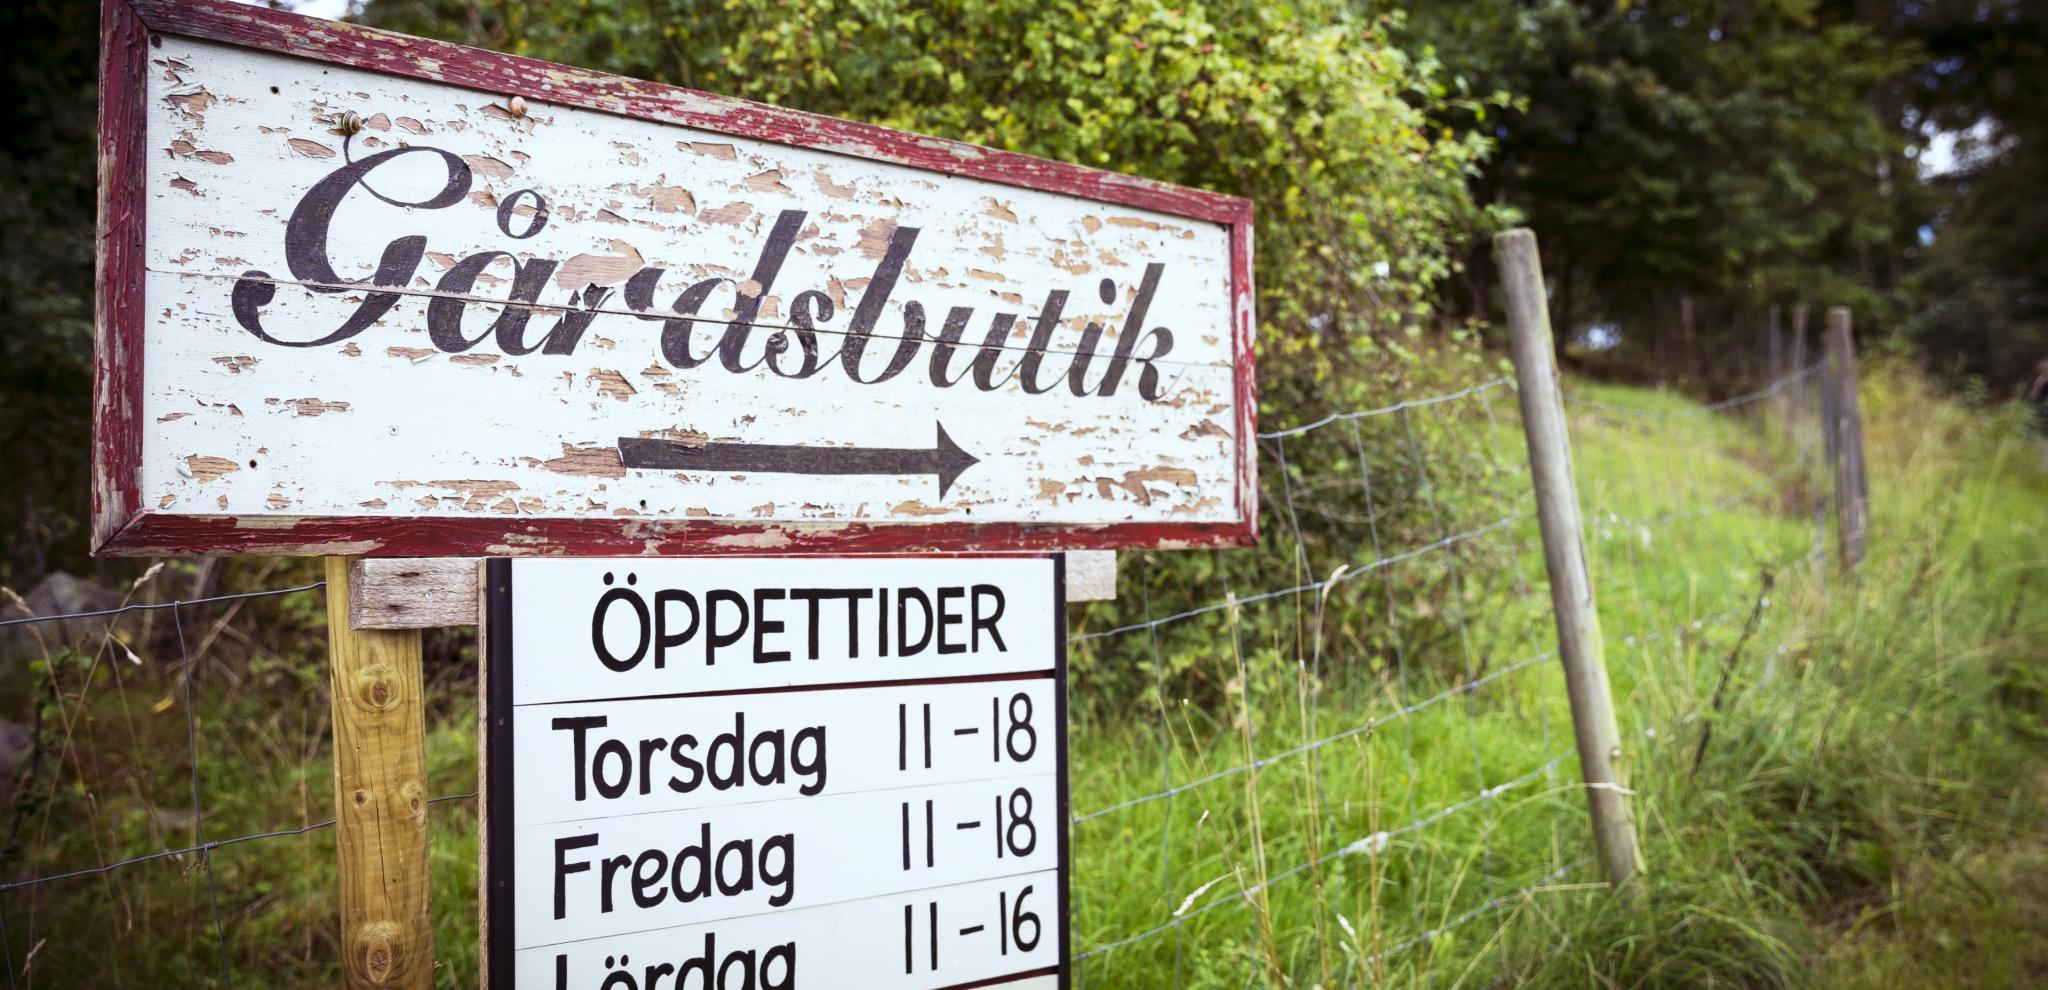 Farm shop sign in Skåne